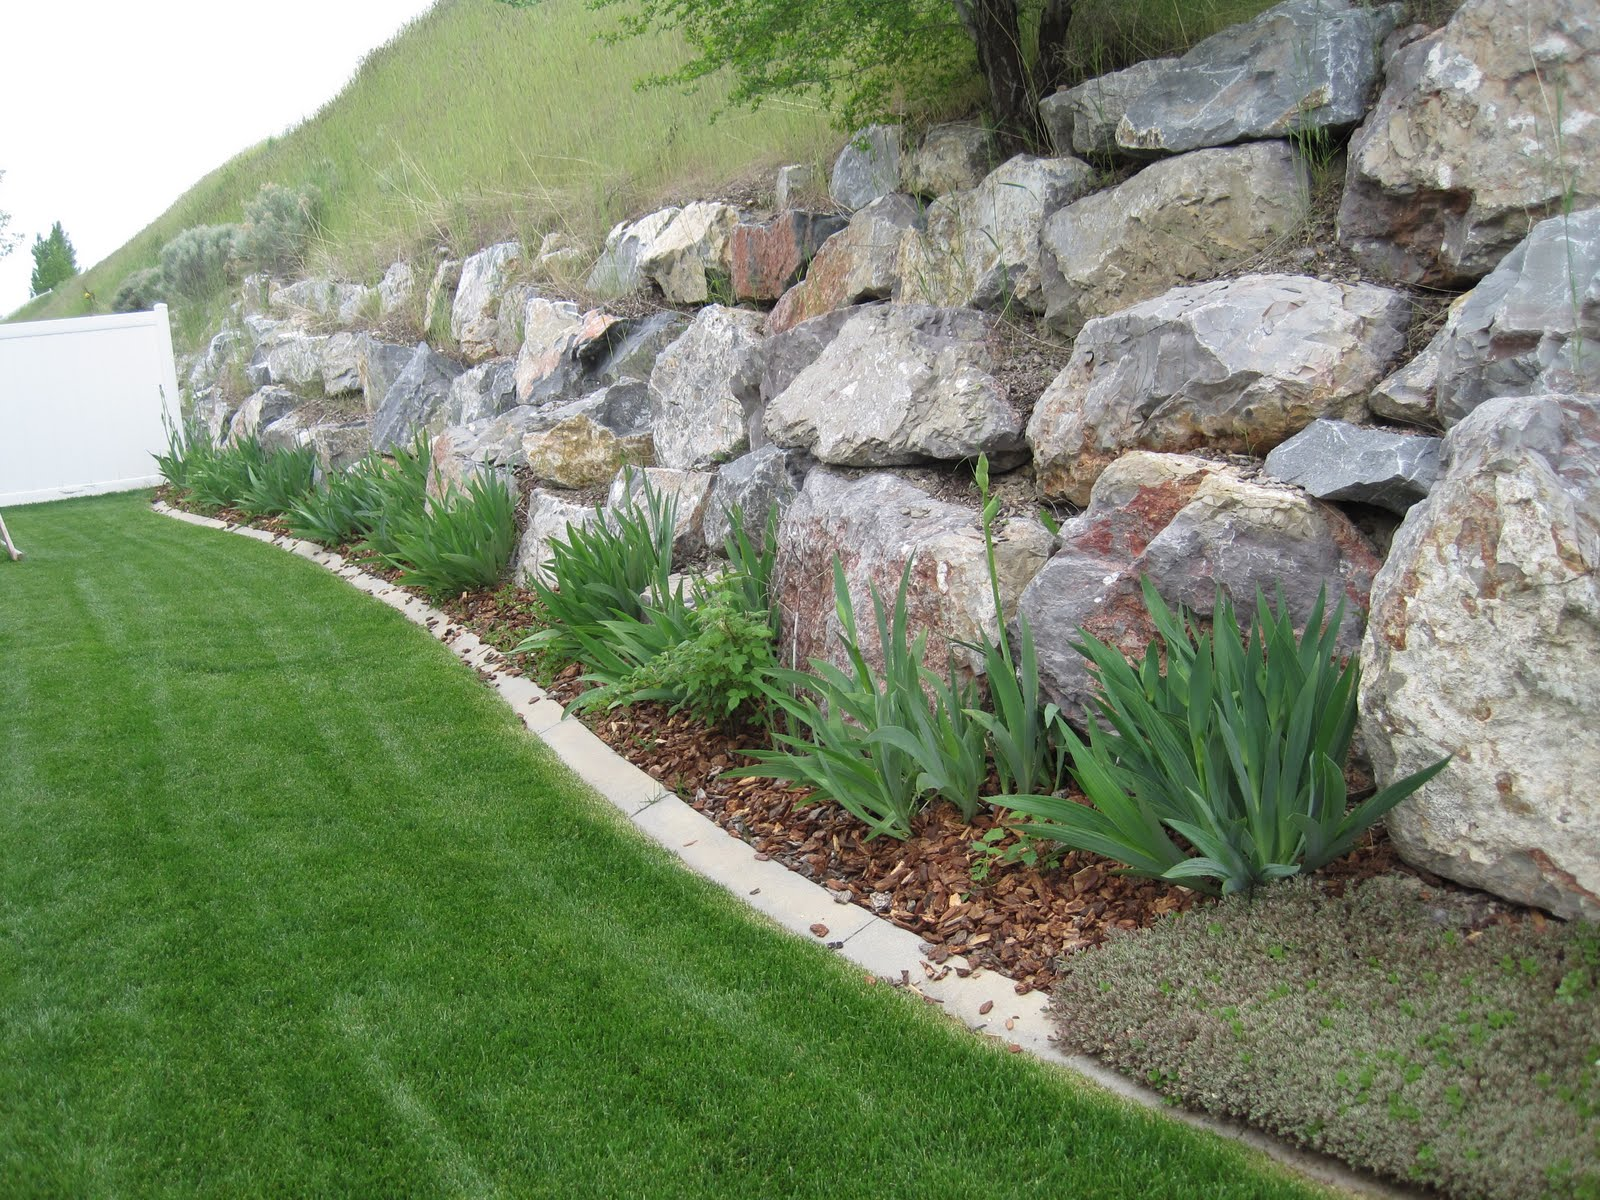 20 Rock Garden Ideas That Will Put Your Backyard On The Map on Big Backyard Landscaping Ideas id=46992